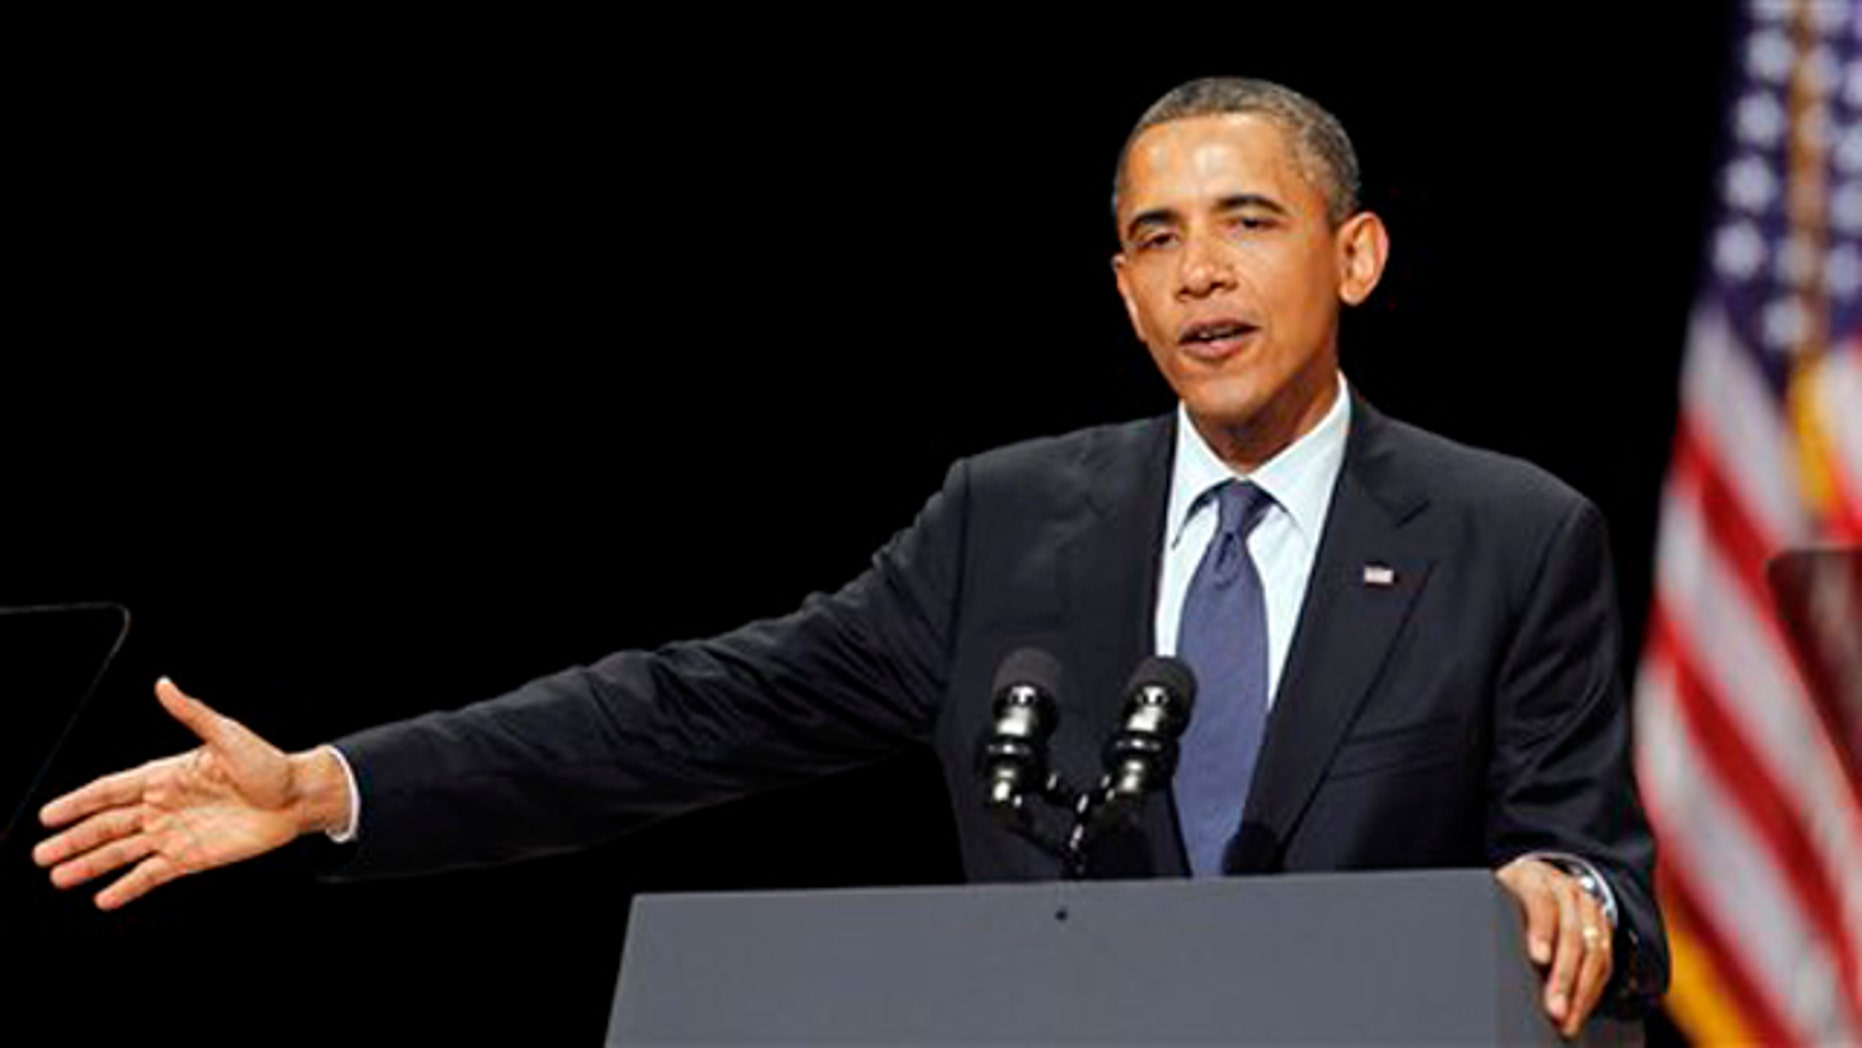 President Obama speaks to a group of supporters at a Miami fundraiser June 13.